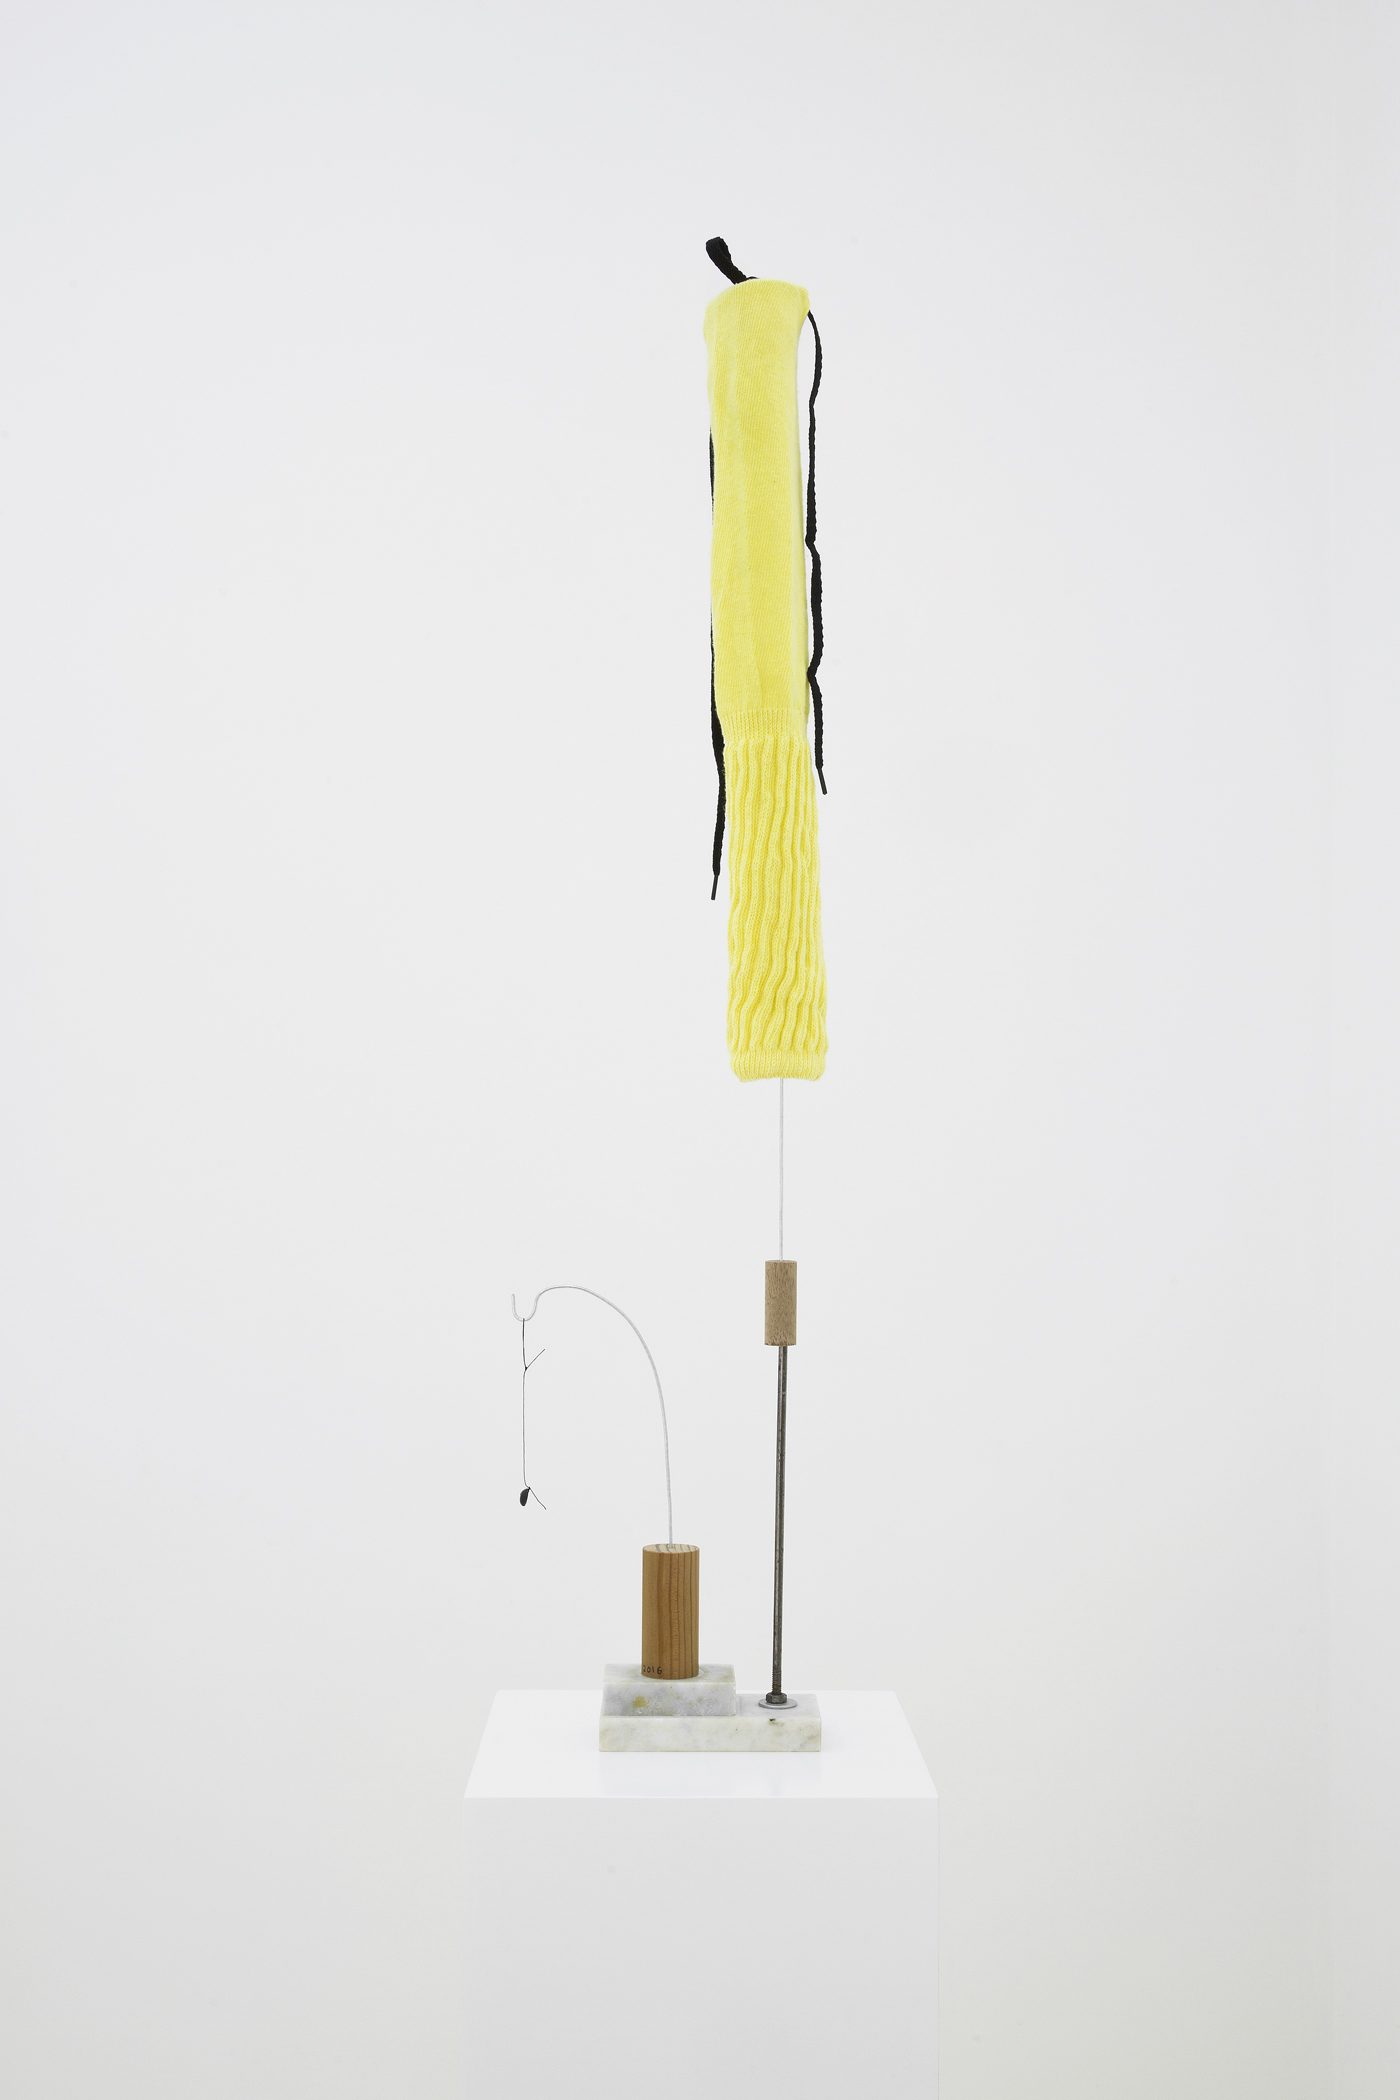 Untitled (Yellow sock), 2016, Cotton sock, shoelace, shoe button, marble, wire, metal, wood, and thread, 85.5 x 19 x 6.5 cm (34 x 7.5 x 2.5 in)